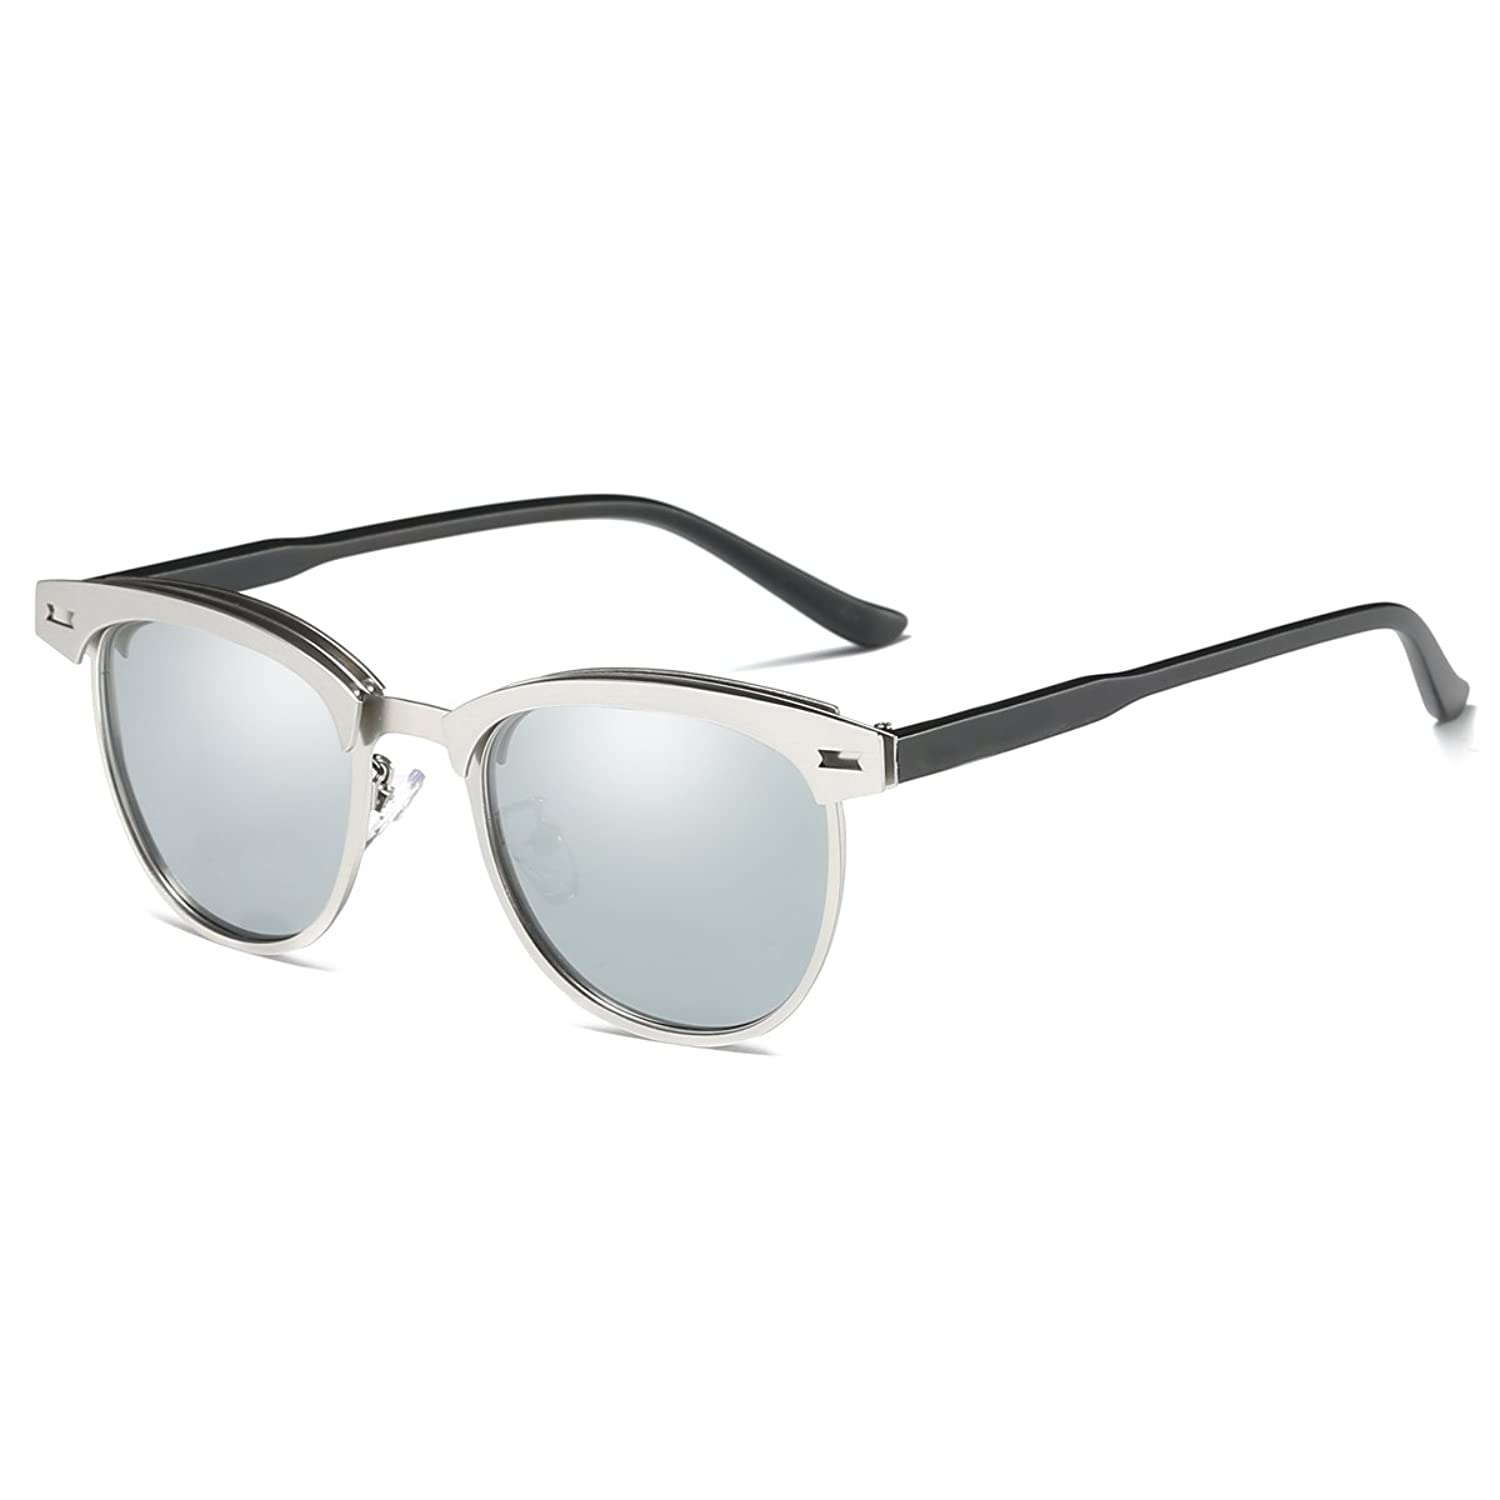 40675910cf4d Rocf Rossini polarized sunglasses will take good care of your vision  protecting your eyes from harmful sun rays, giving you full protections  when driving or ...